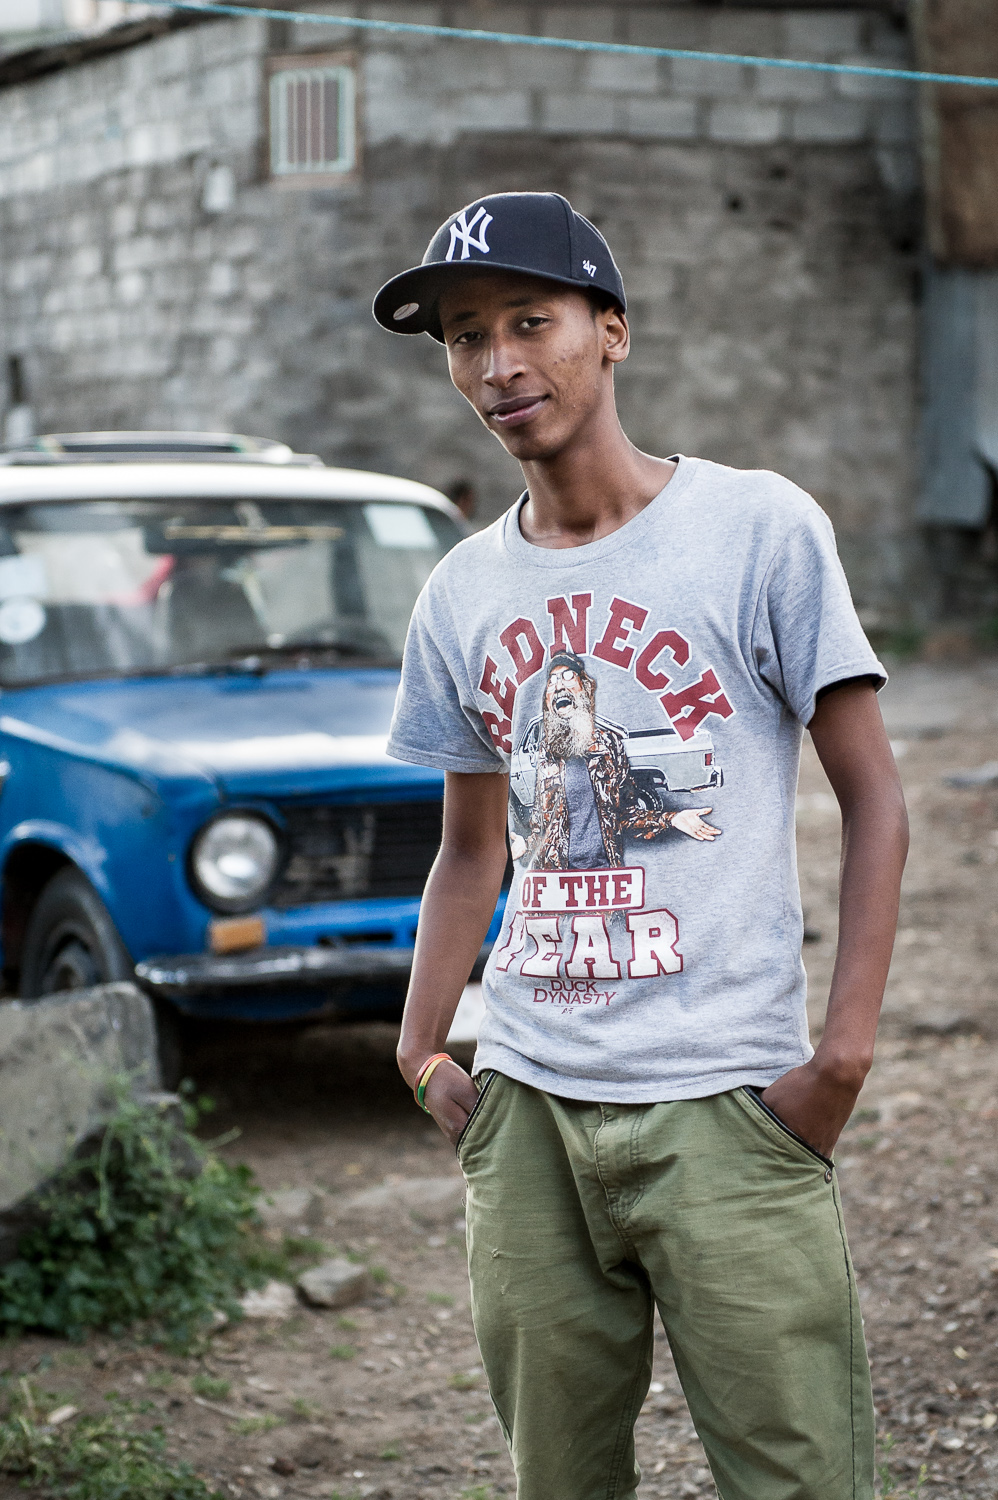 Micky in front of taxi, Ethiopia